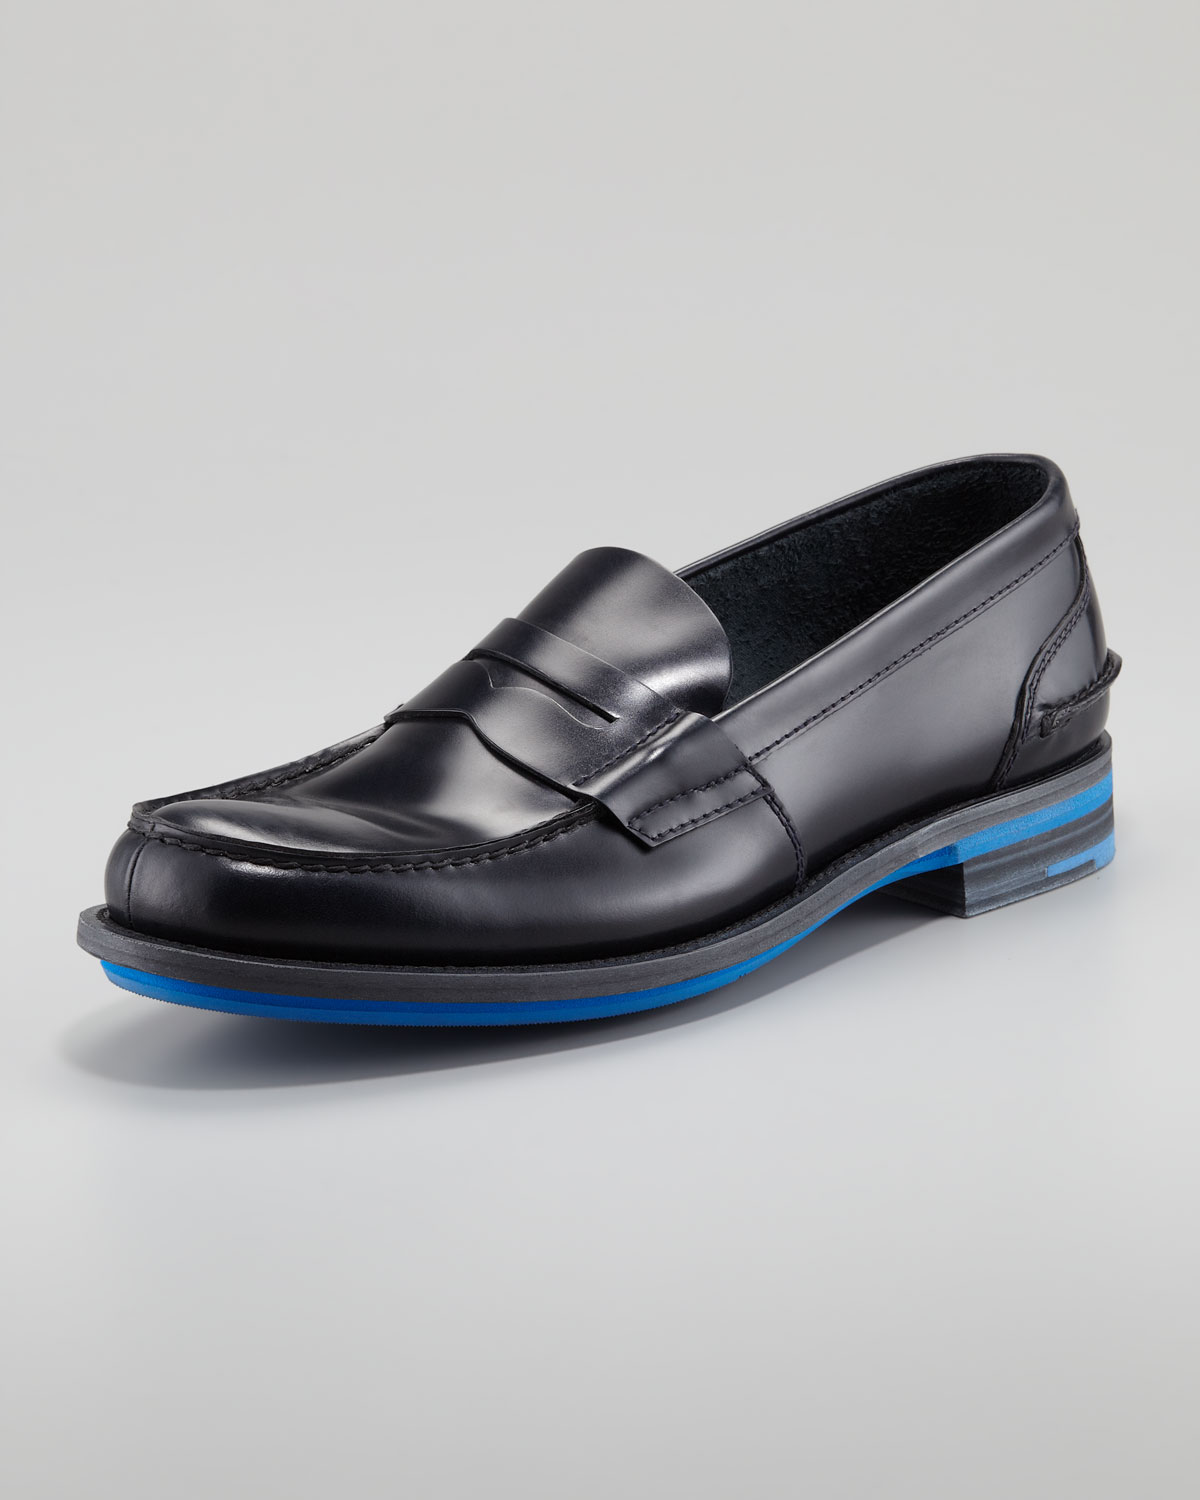 2eadcaa2042 ... order lyst prada rubber sole penny loafer in black for men 07f87 fae7b